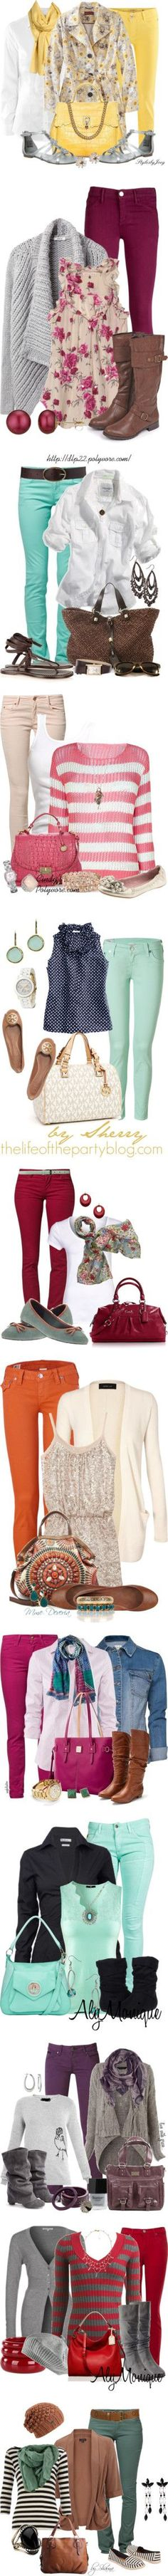 Great ideas for what to wear with colored pants!